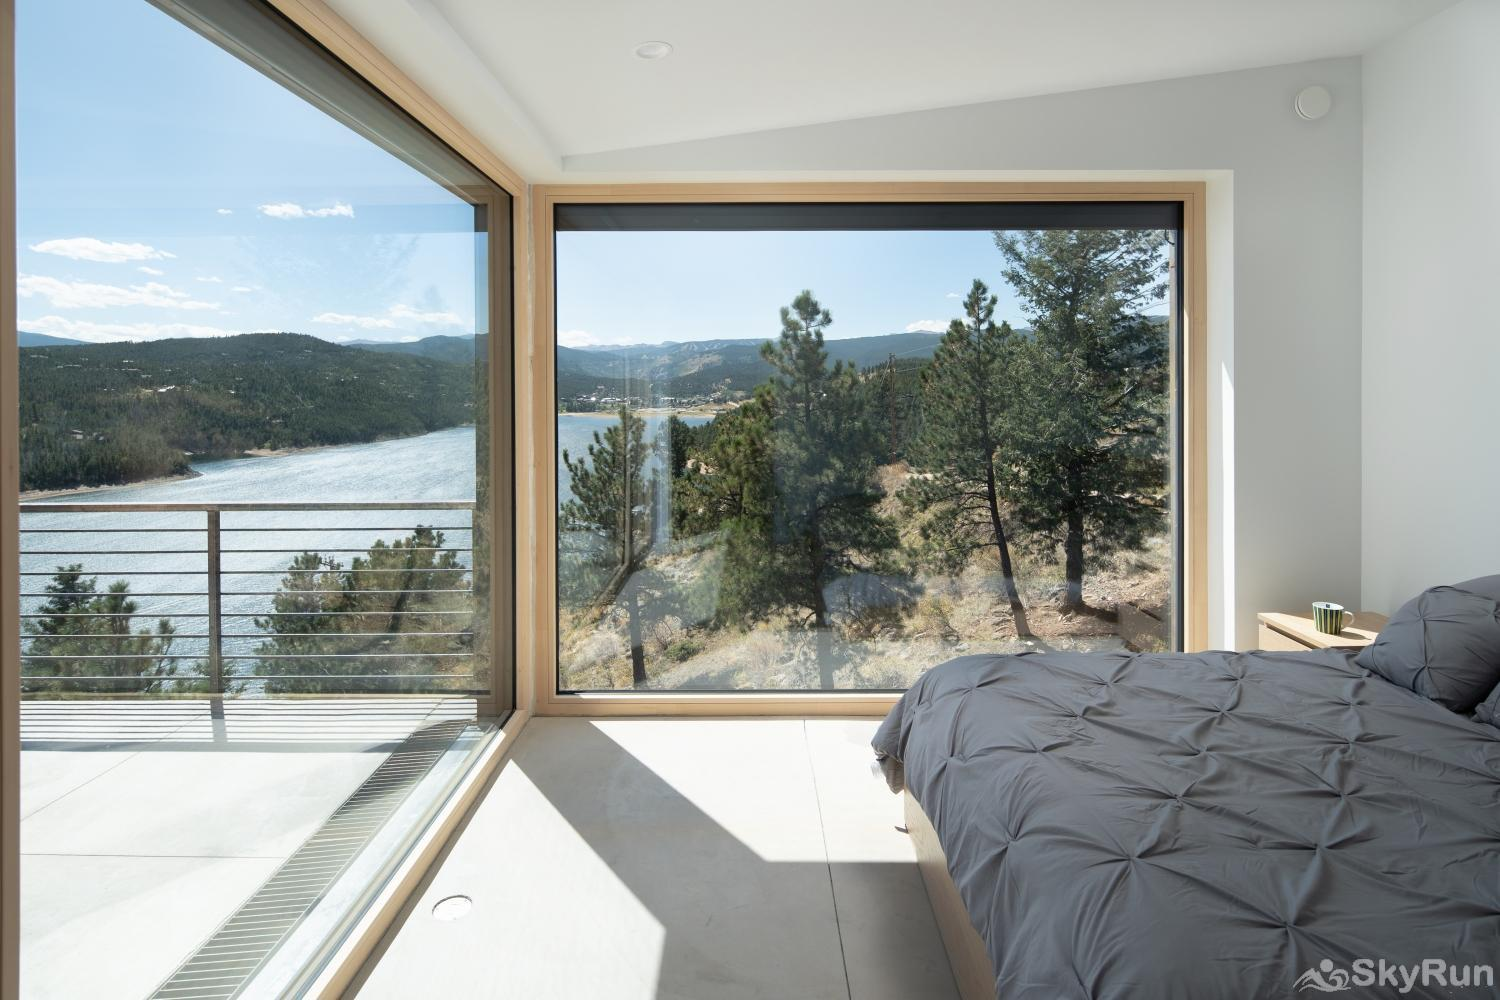 Timberline Haus Master Bedroom View